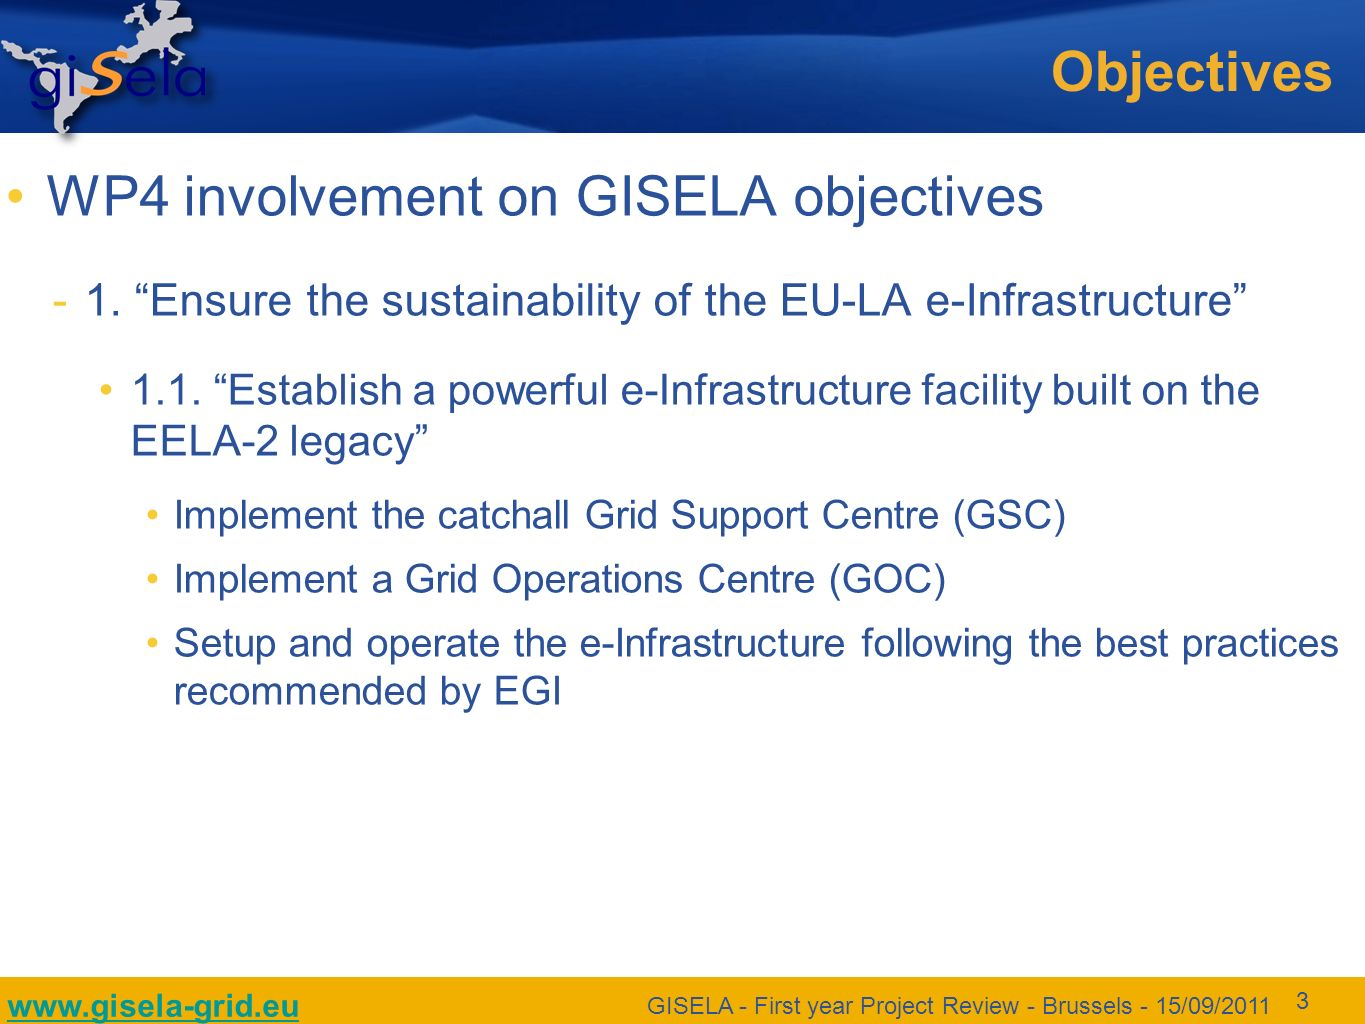 www.gisela-grid.eu GISELA - First year Project Review - Brussels - 15/09/2011 3 Objectives WP4 involvement on GISELA objectives 1.